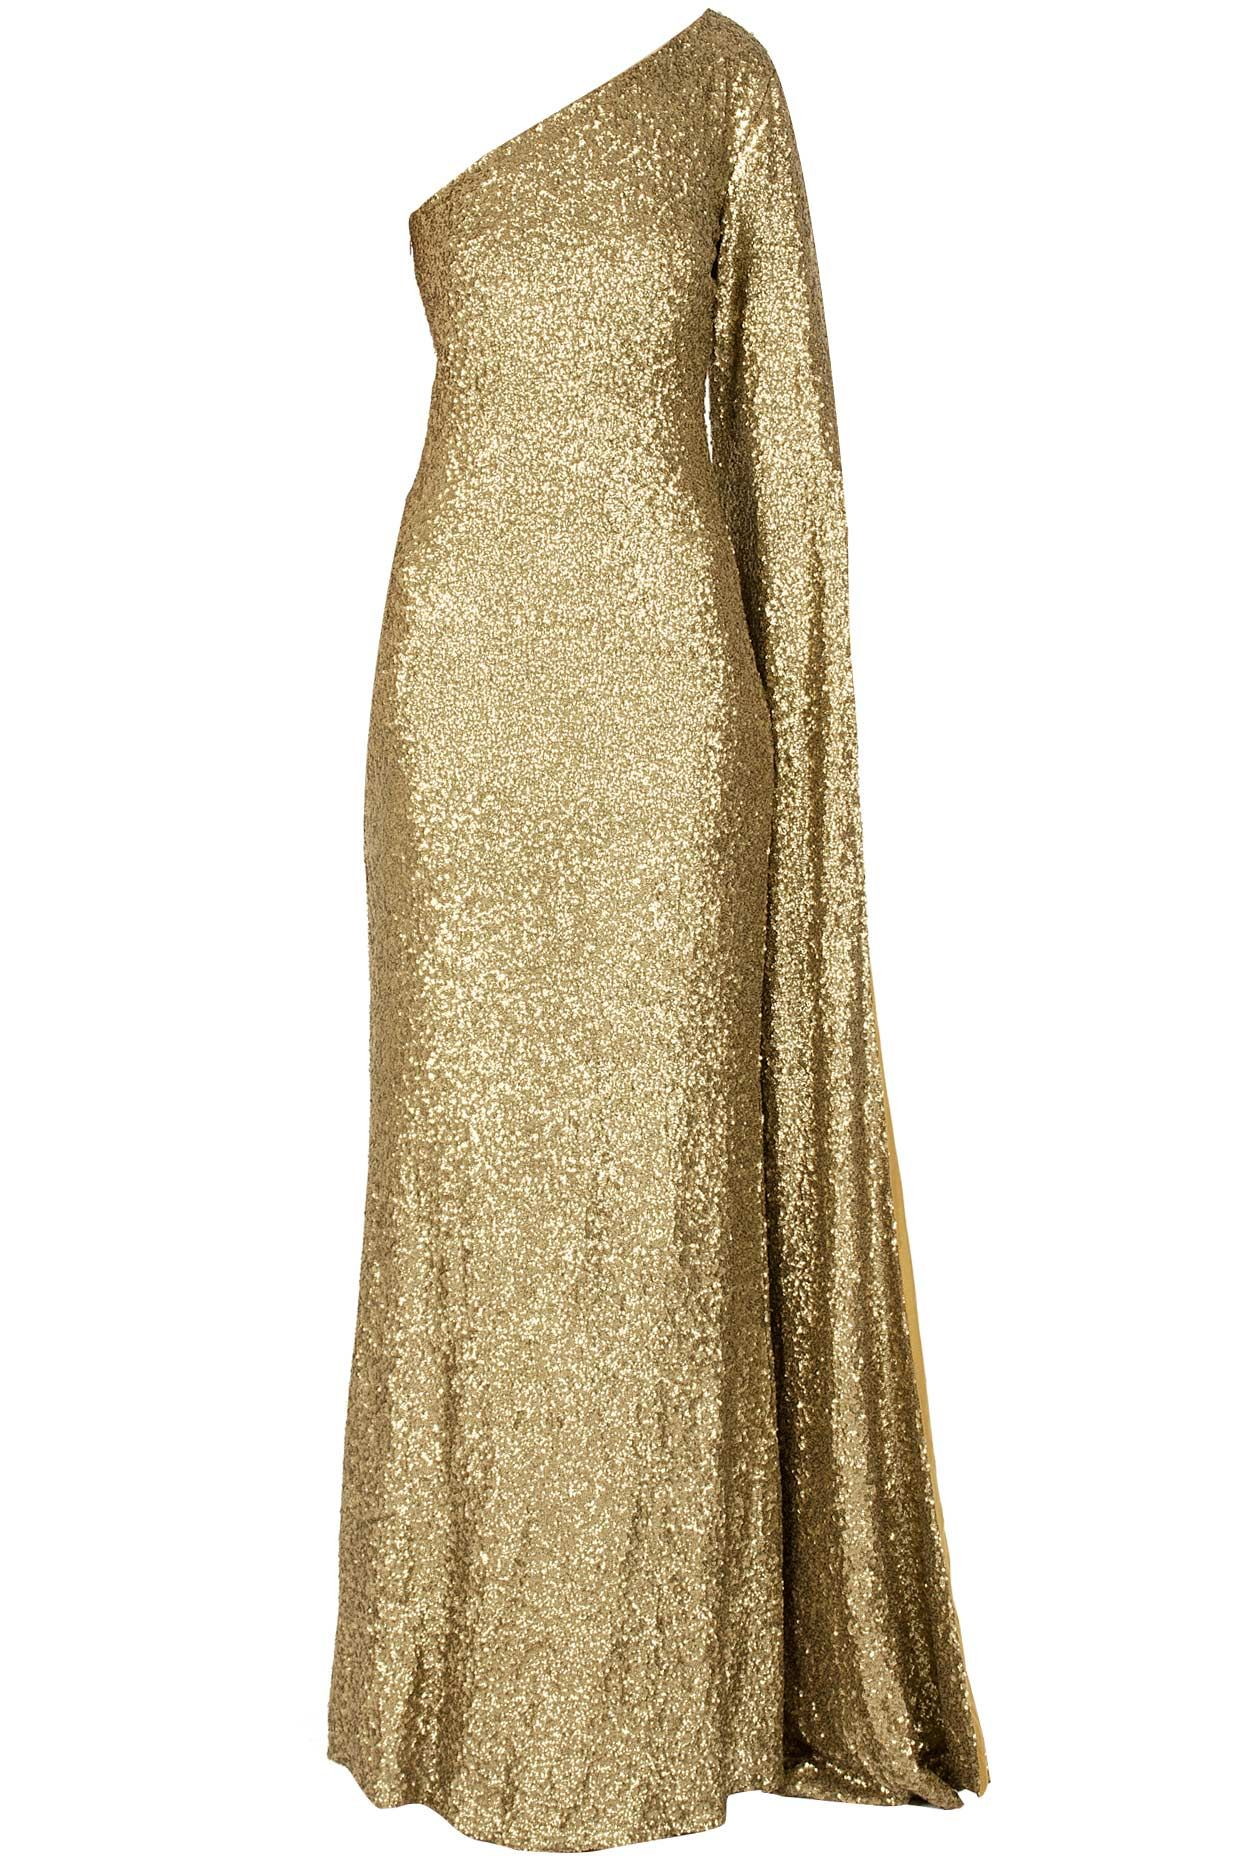 Yellow dress long sleeve  Shimmer long sleeved gown available only at Perniaus PopUp Shop